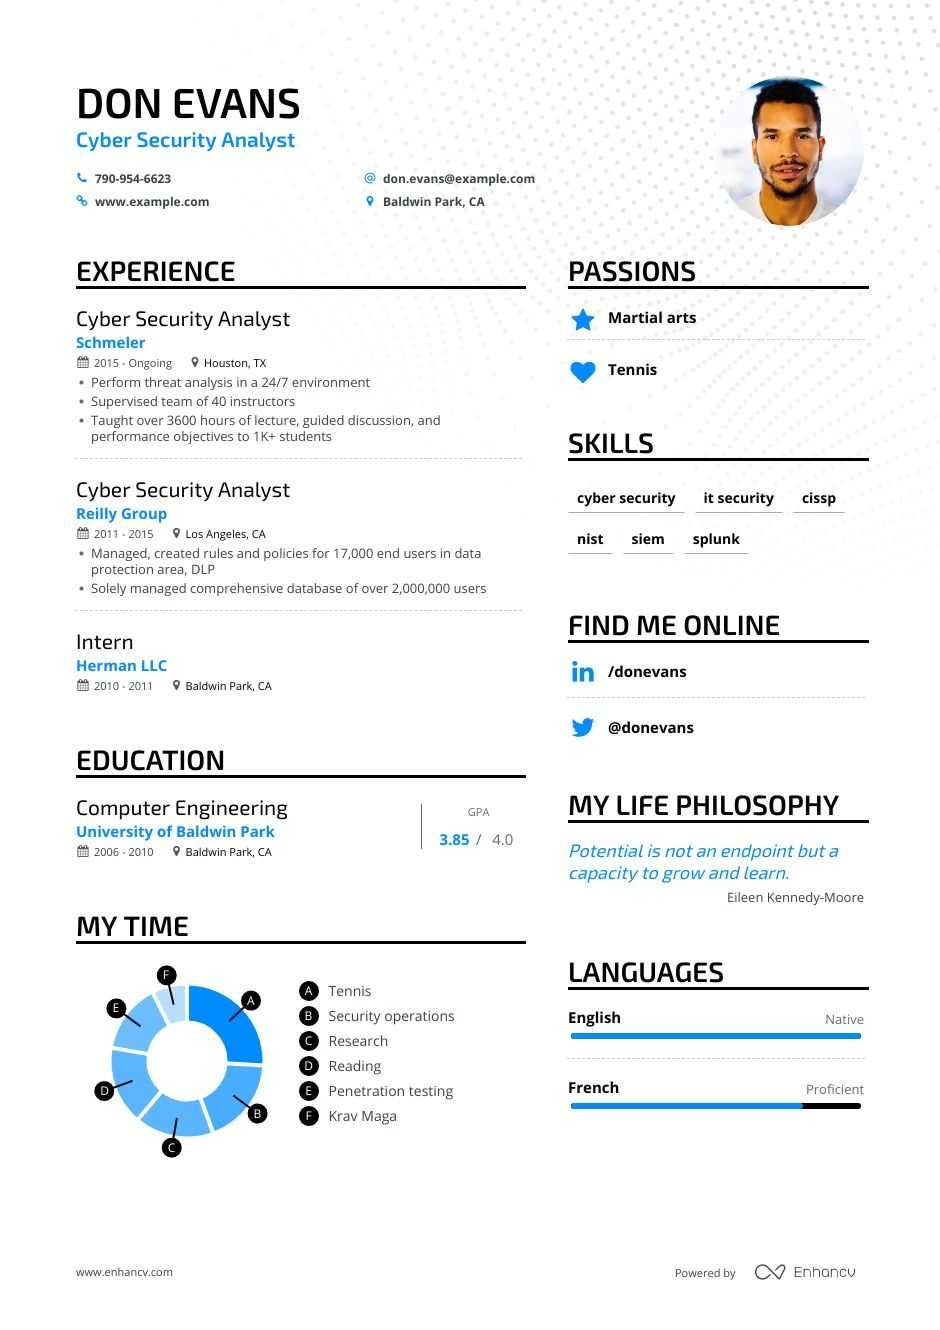 cyber security analyst resume examples guide pro tips enhancv cybersecurity outreach Resume Cybersecurity Resume Examples